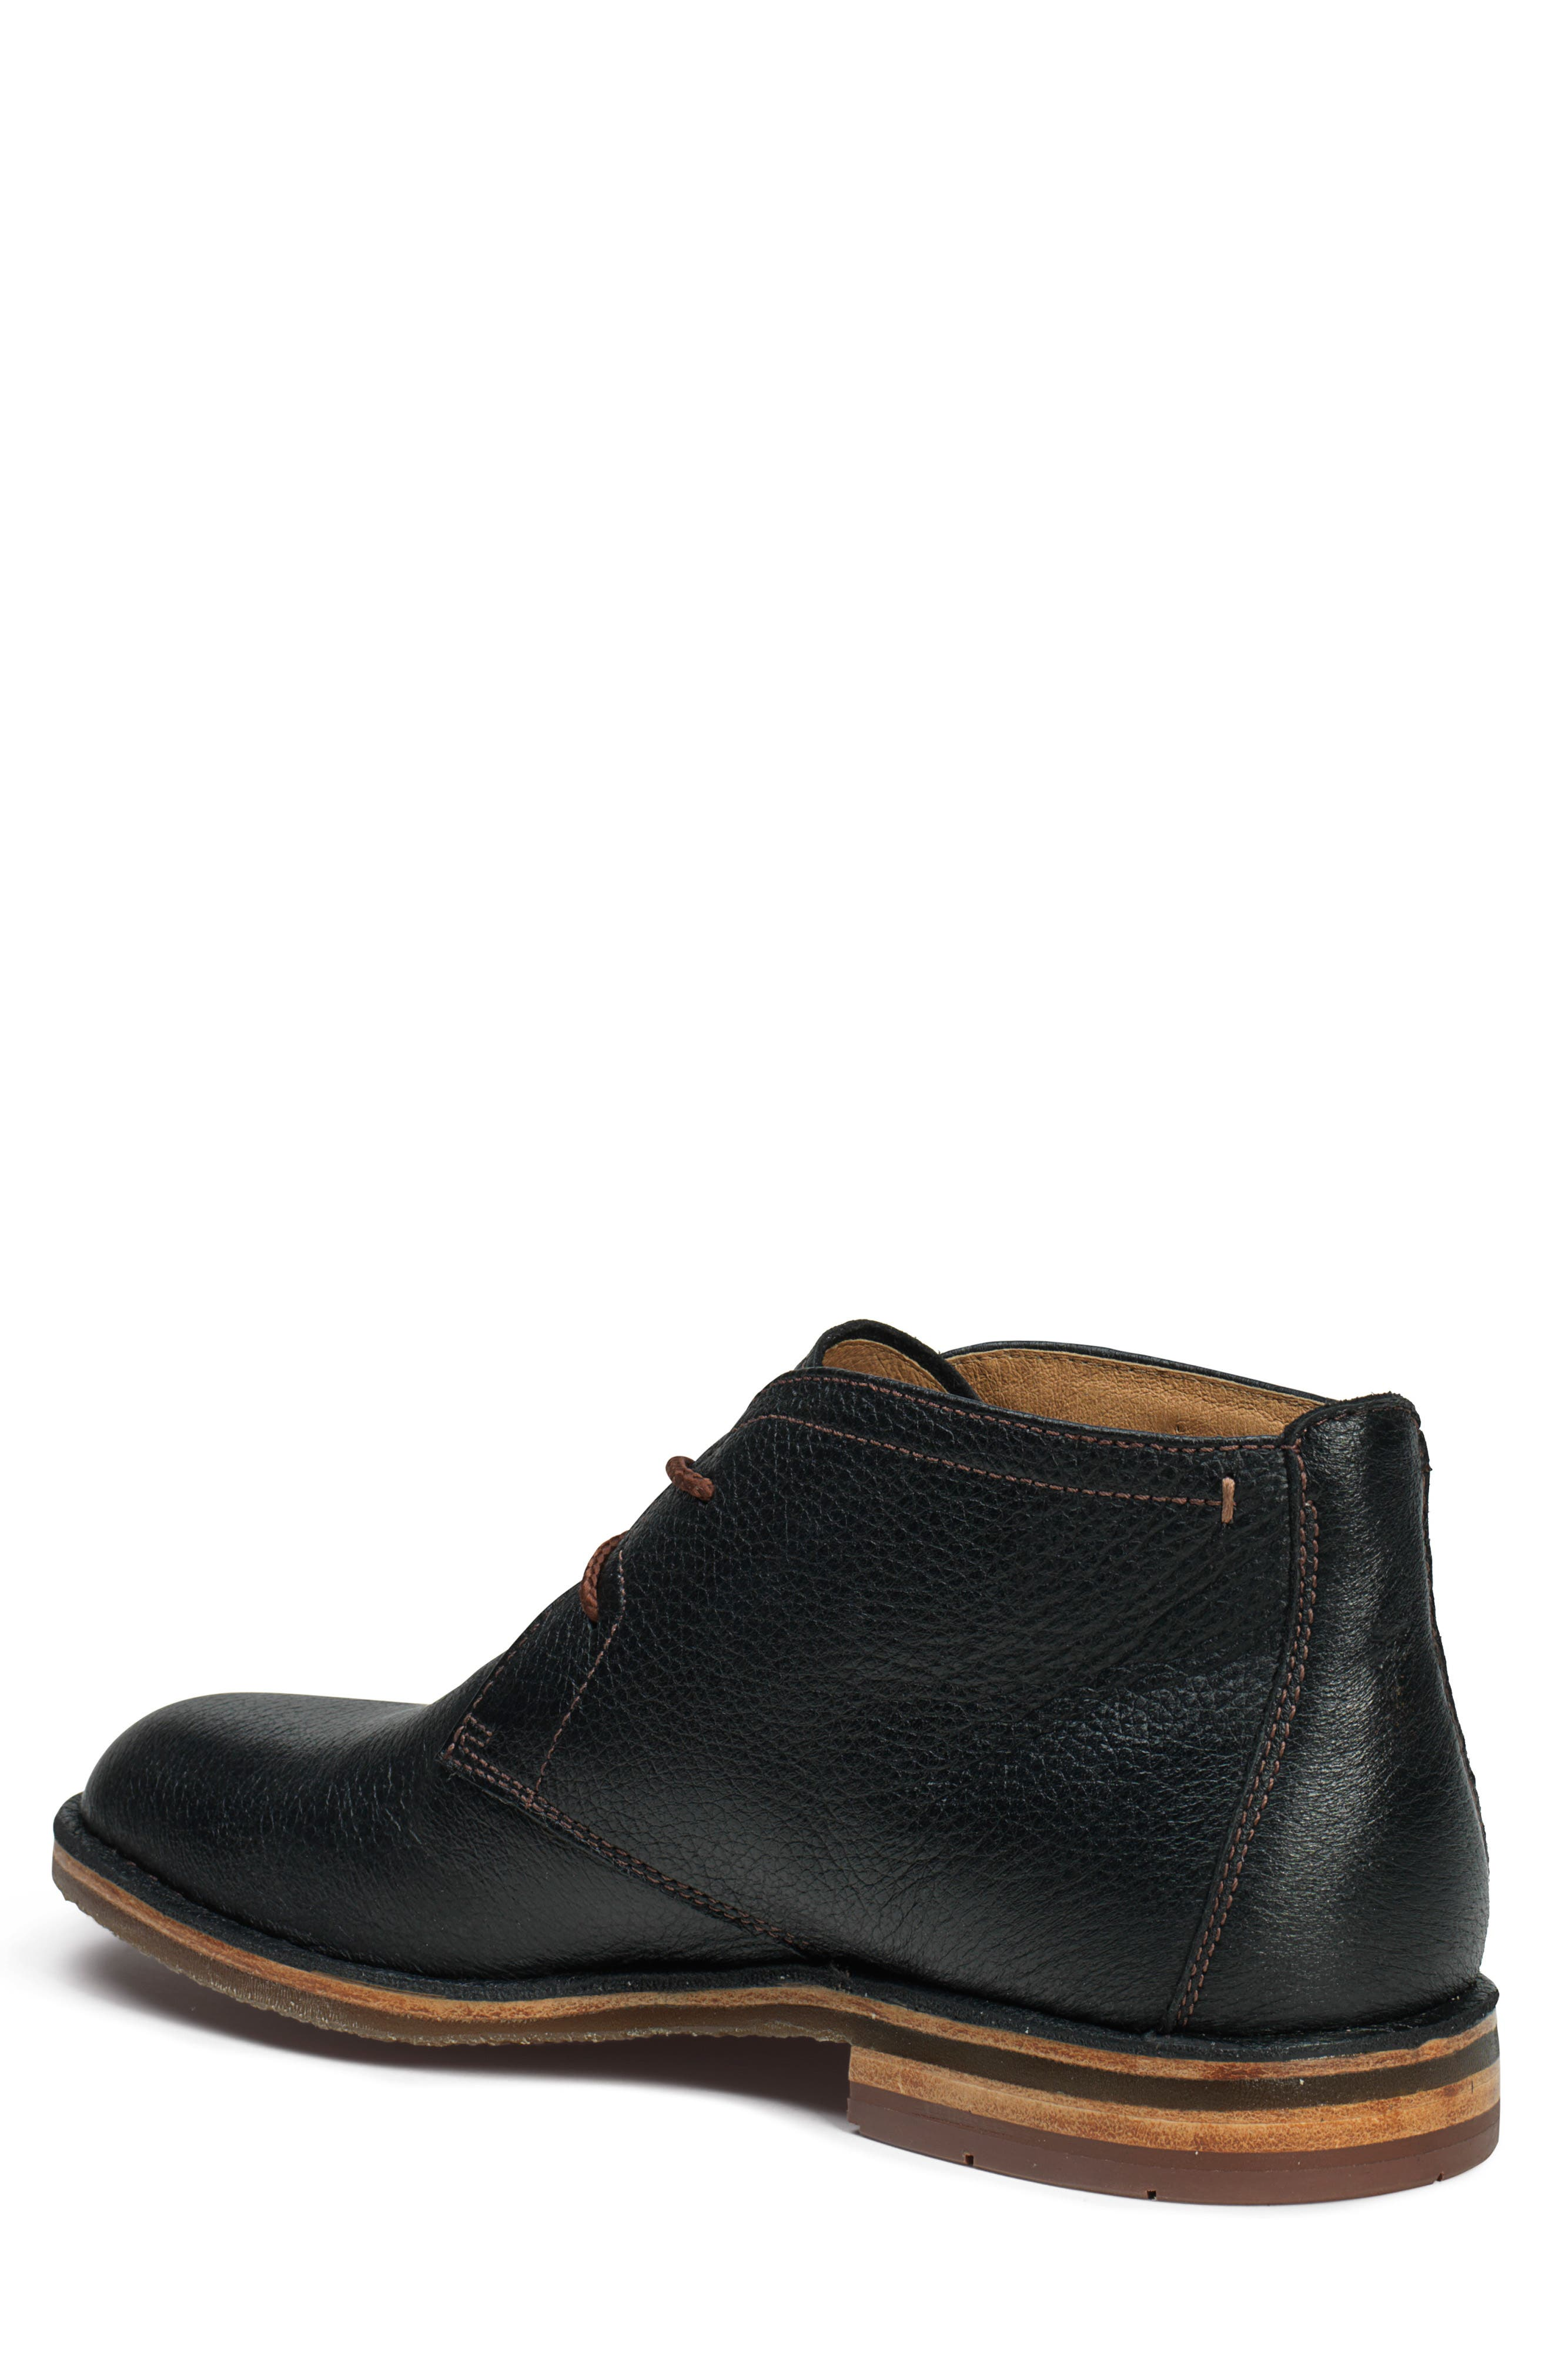 TRASK, 'Brady' Chukka Boot, Alternate thumbnail 6, color, BLACK NORWEGIAN ELK